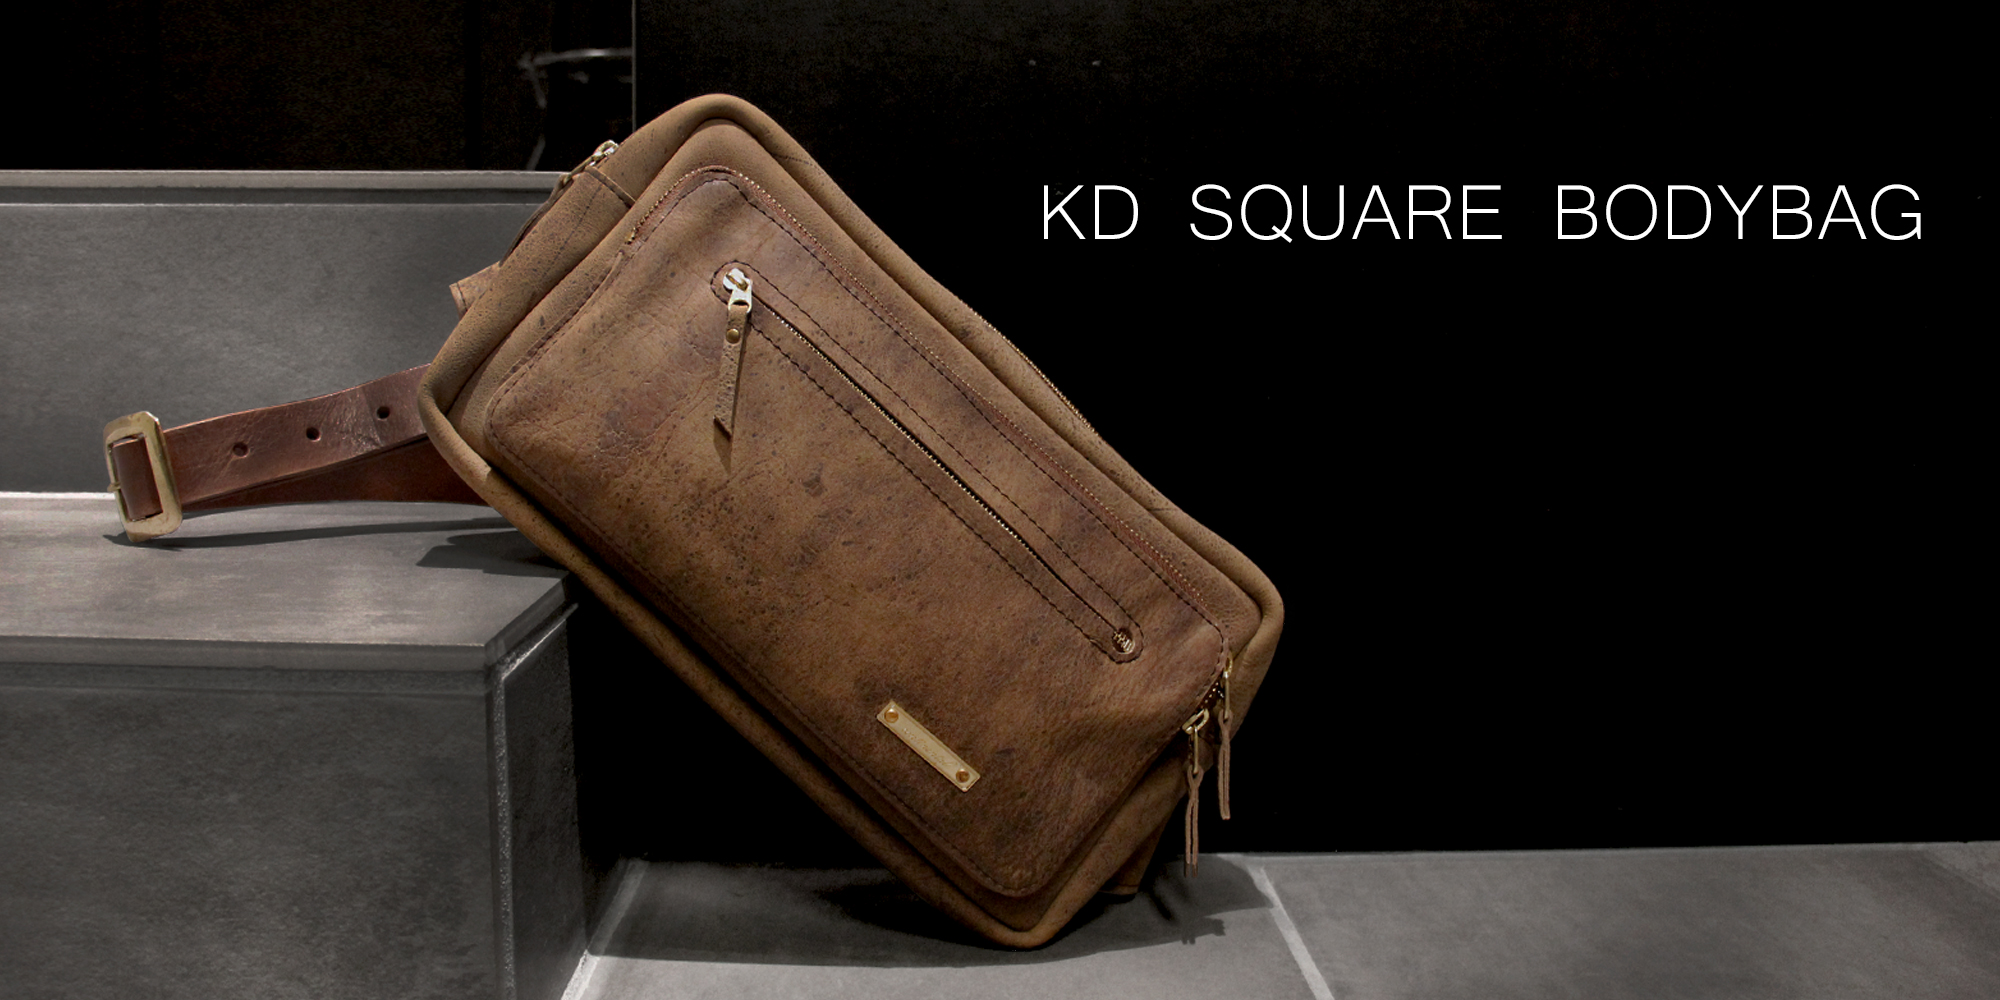 continental Kudu SQUARE BODYBAG